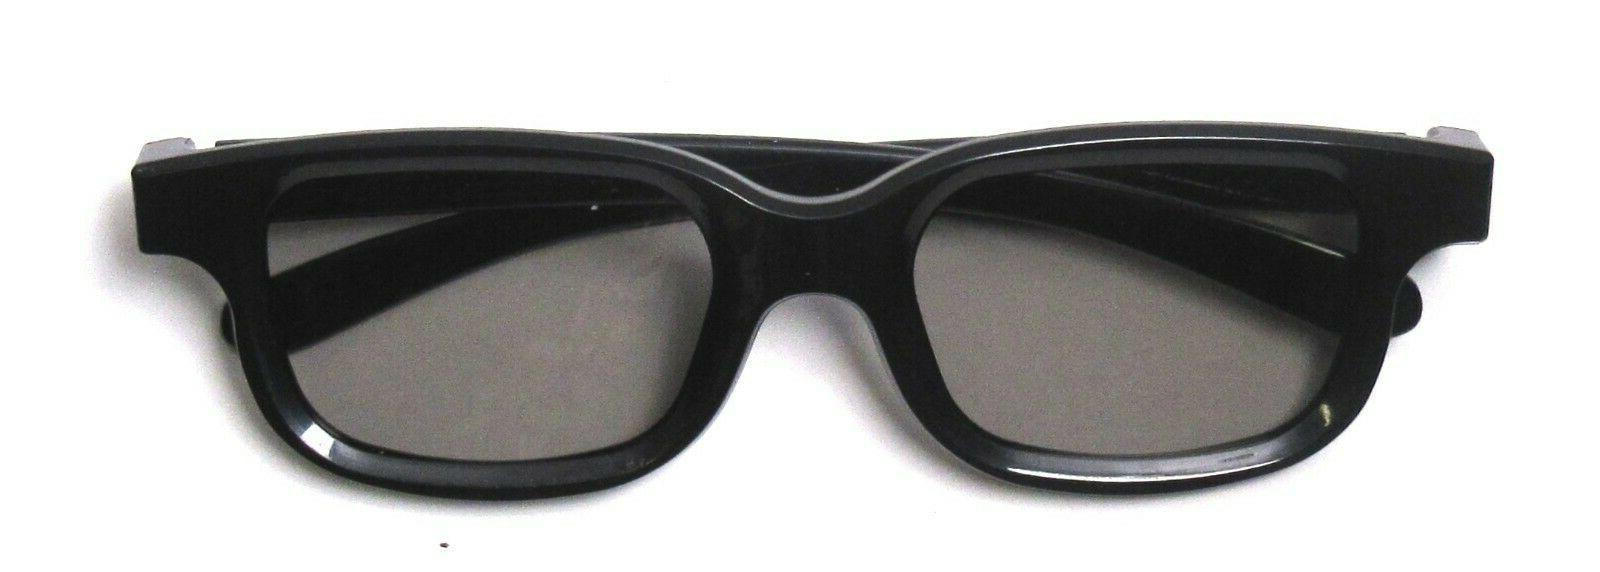 REAL 3D Glasses Adult >NEW< 3d TVs<<<